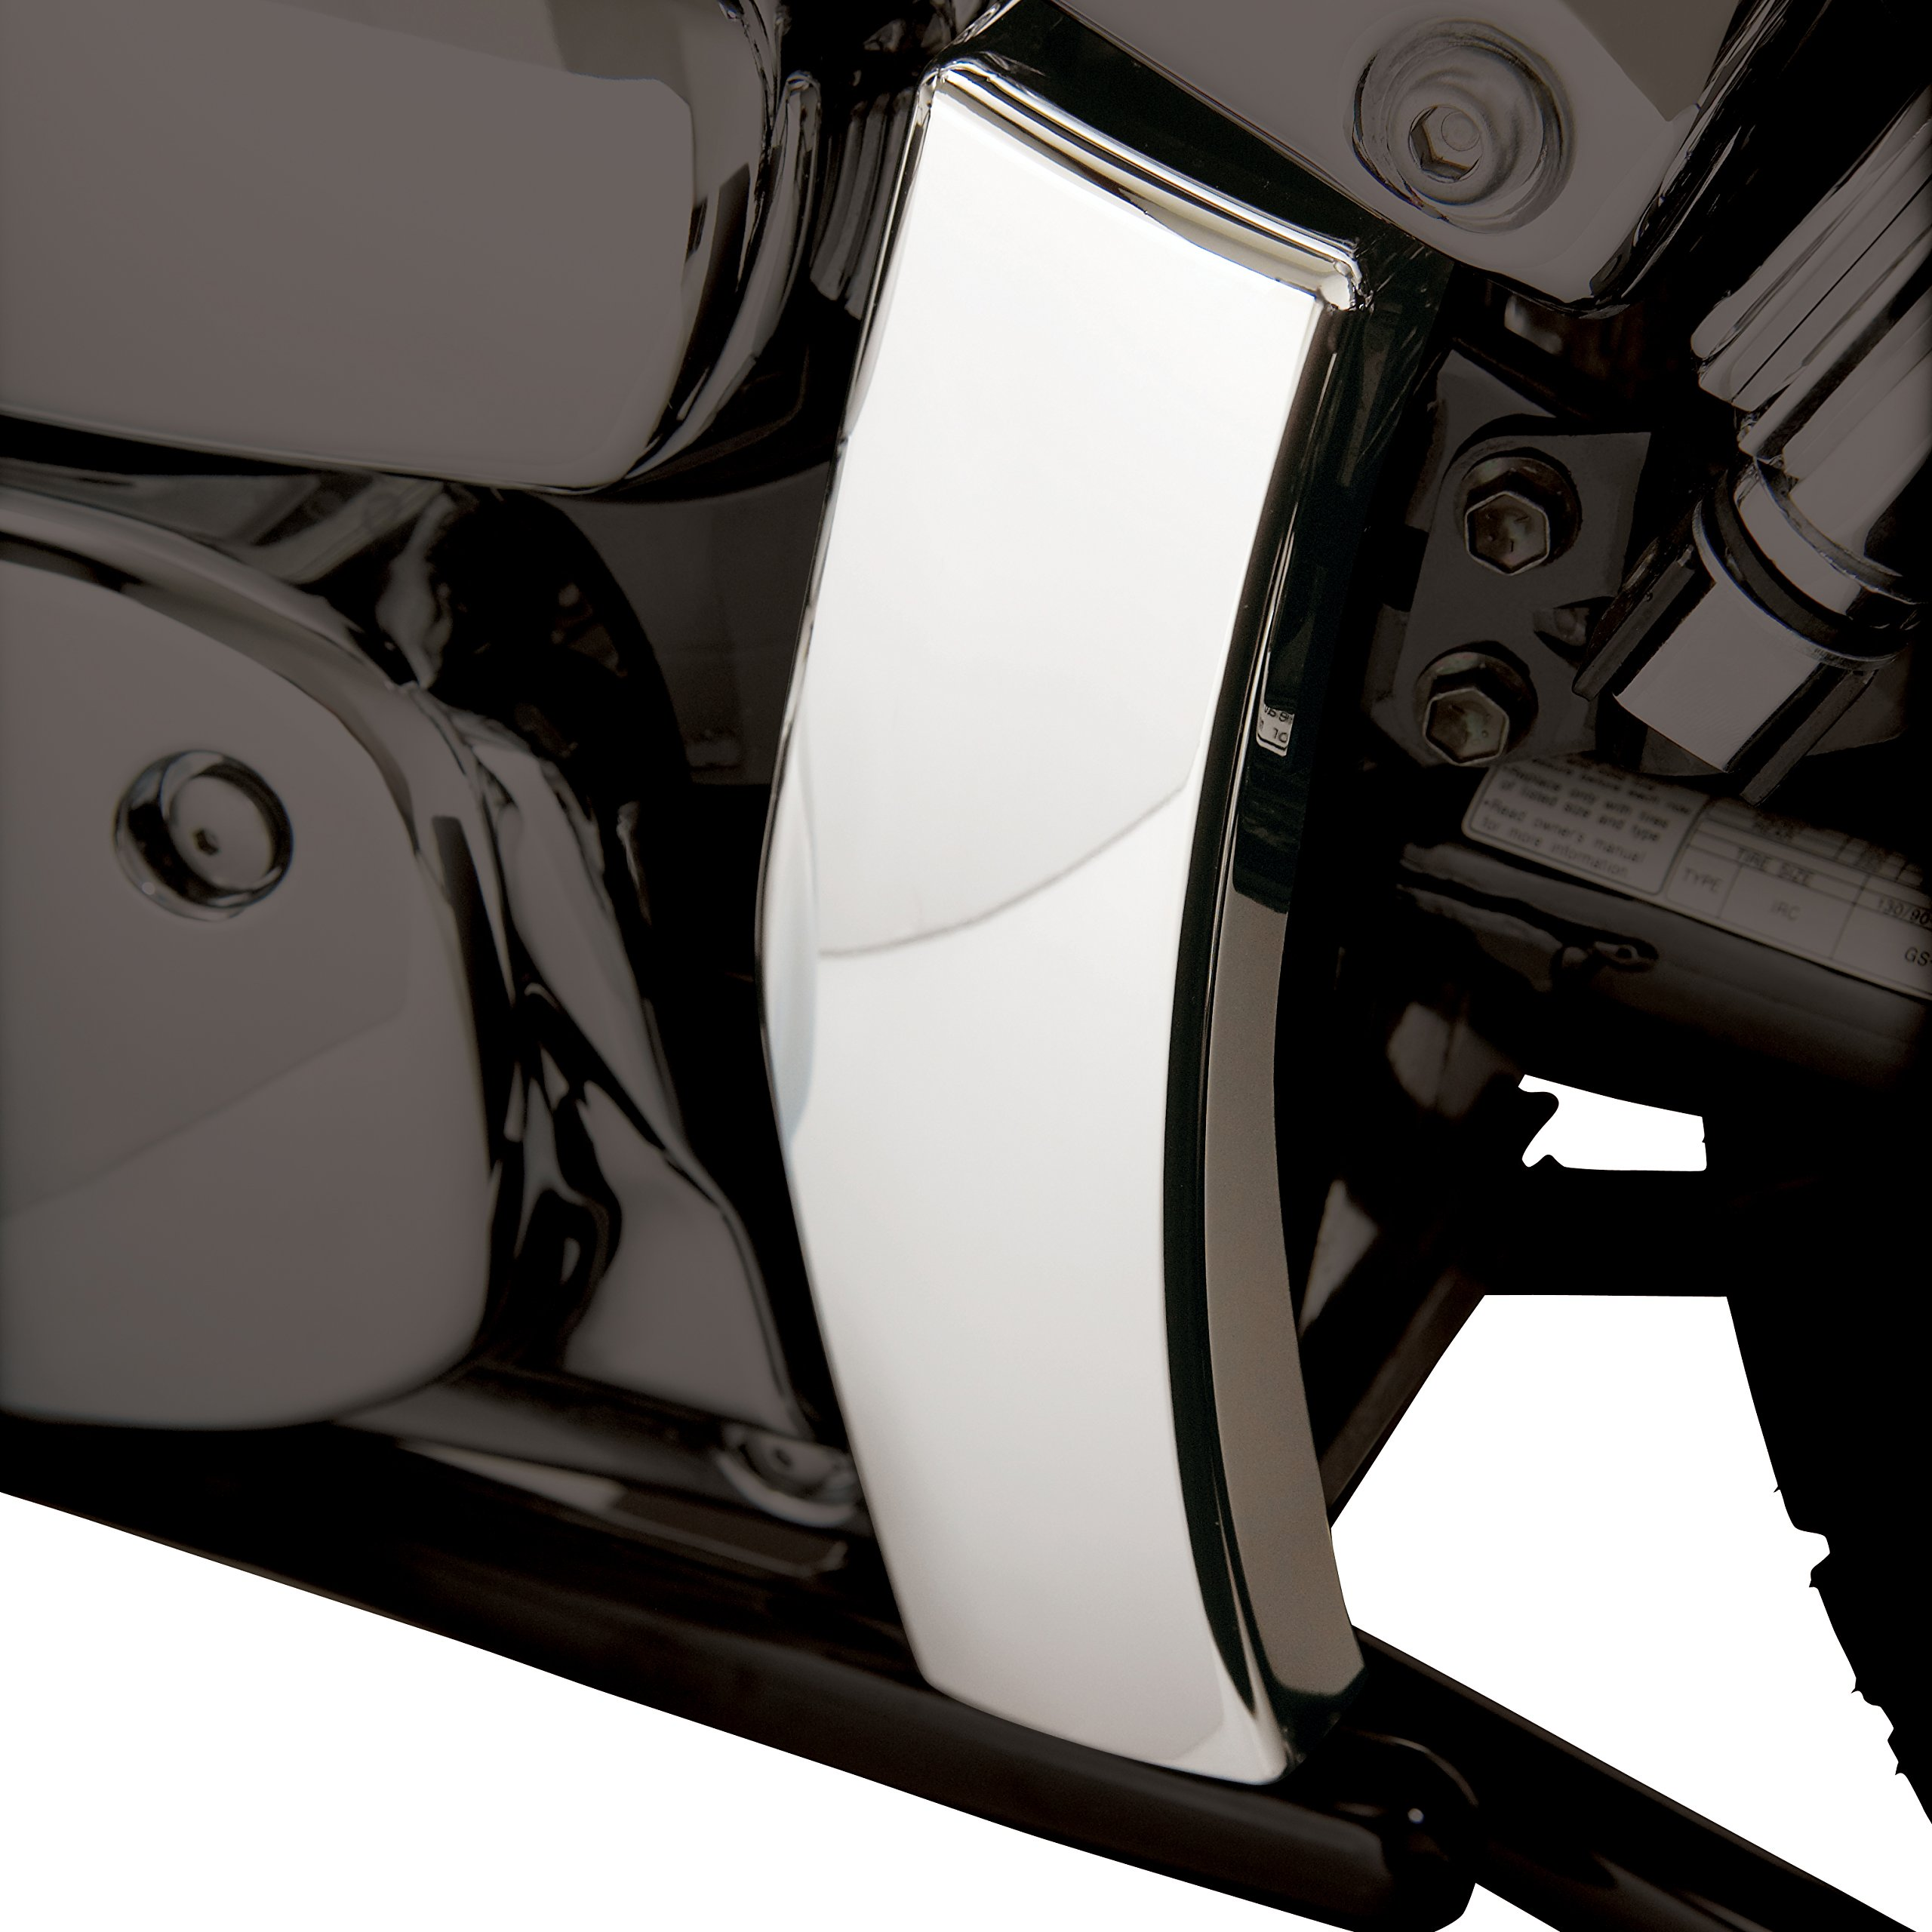 Show Chrome Accessories 82-216 Swing Arm Cover by Show Chrome Accessories (Image #2)